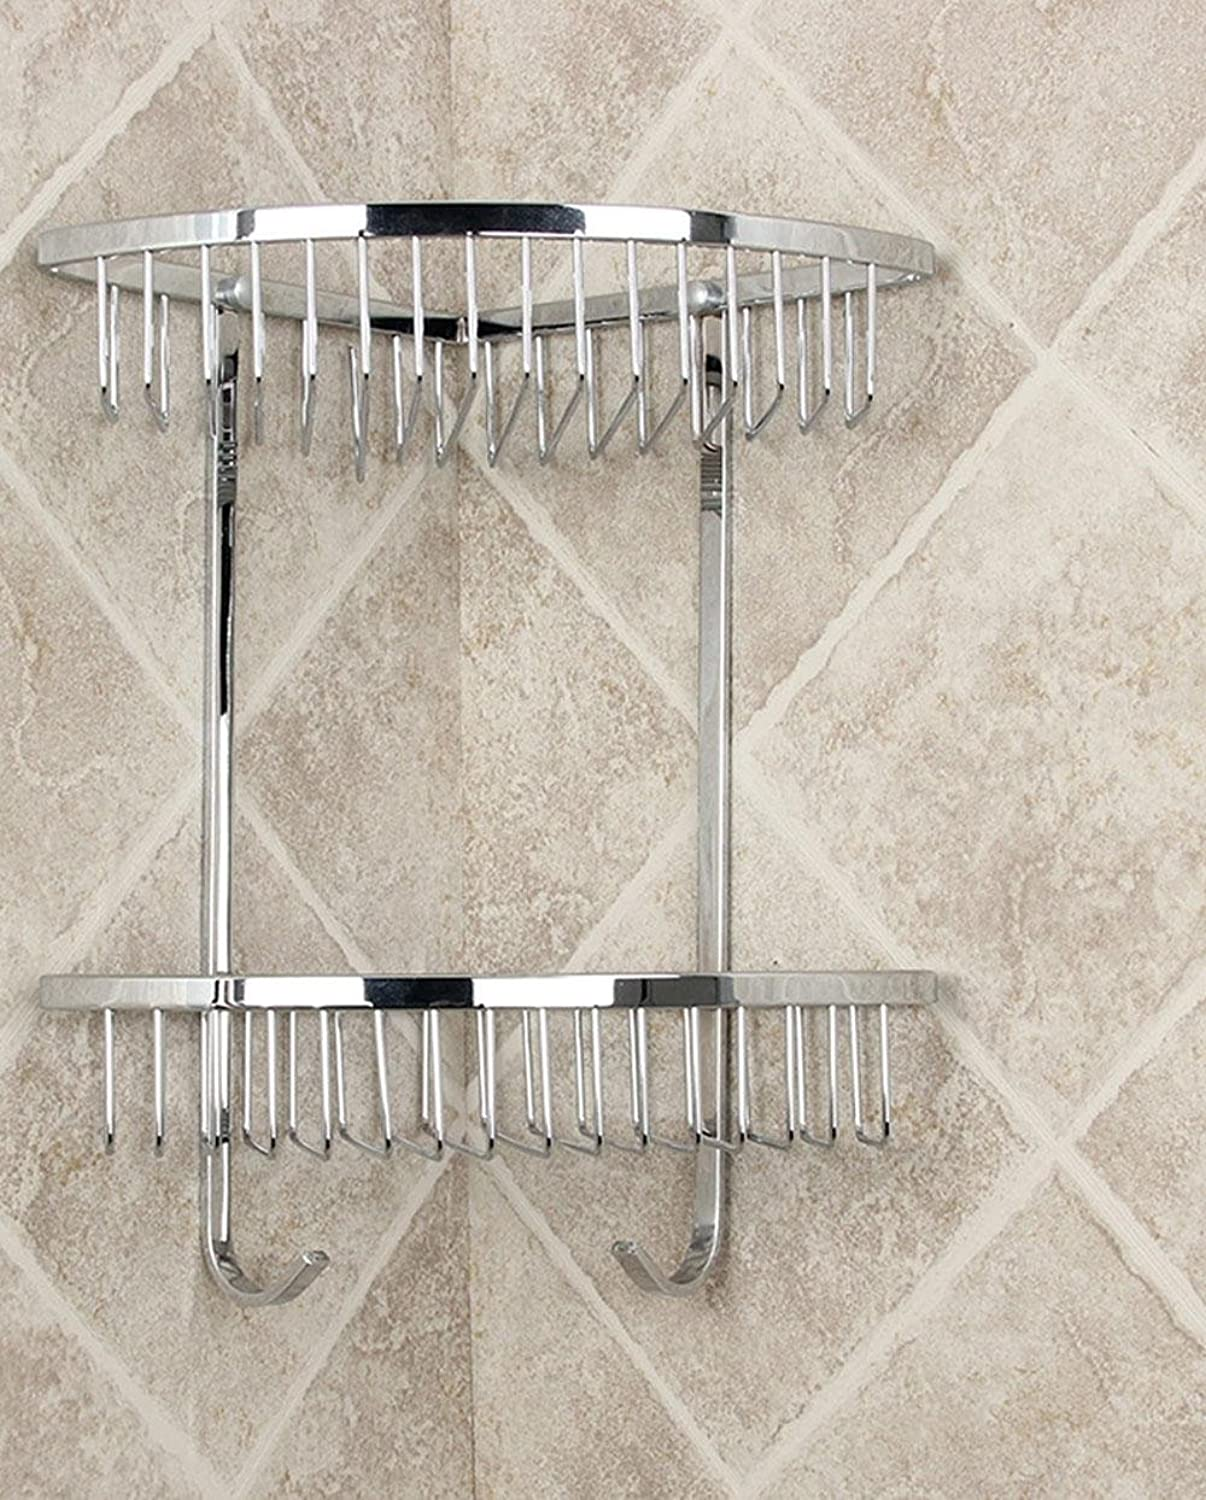 SSBY High-grade stainless steel racks, bathroom and thick solid steel rod with hook rack